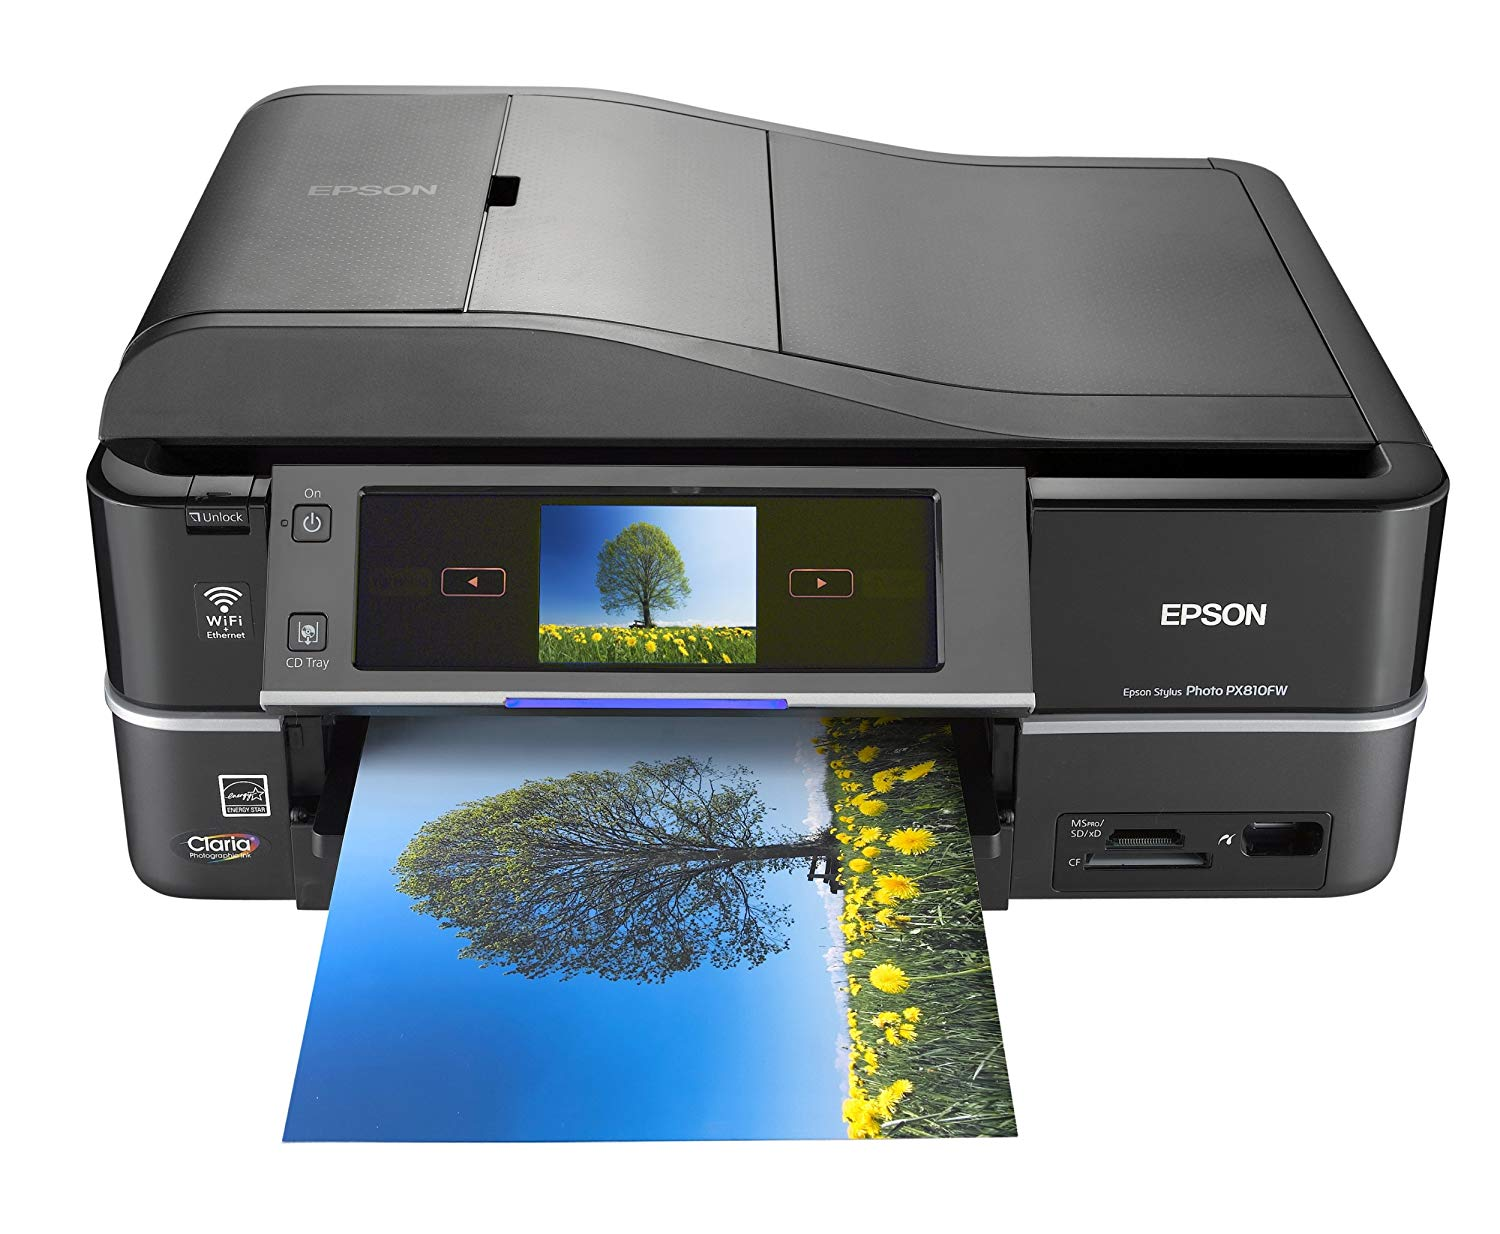 EPSON STYLUS PHOTO PX810FW SCANNER DRIVER DOWNLOAD (2019)